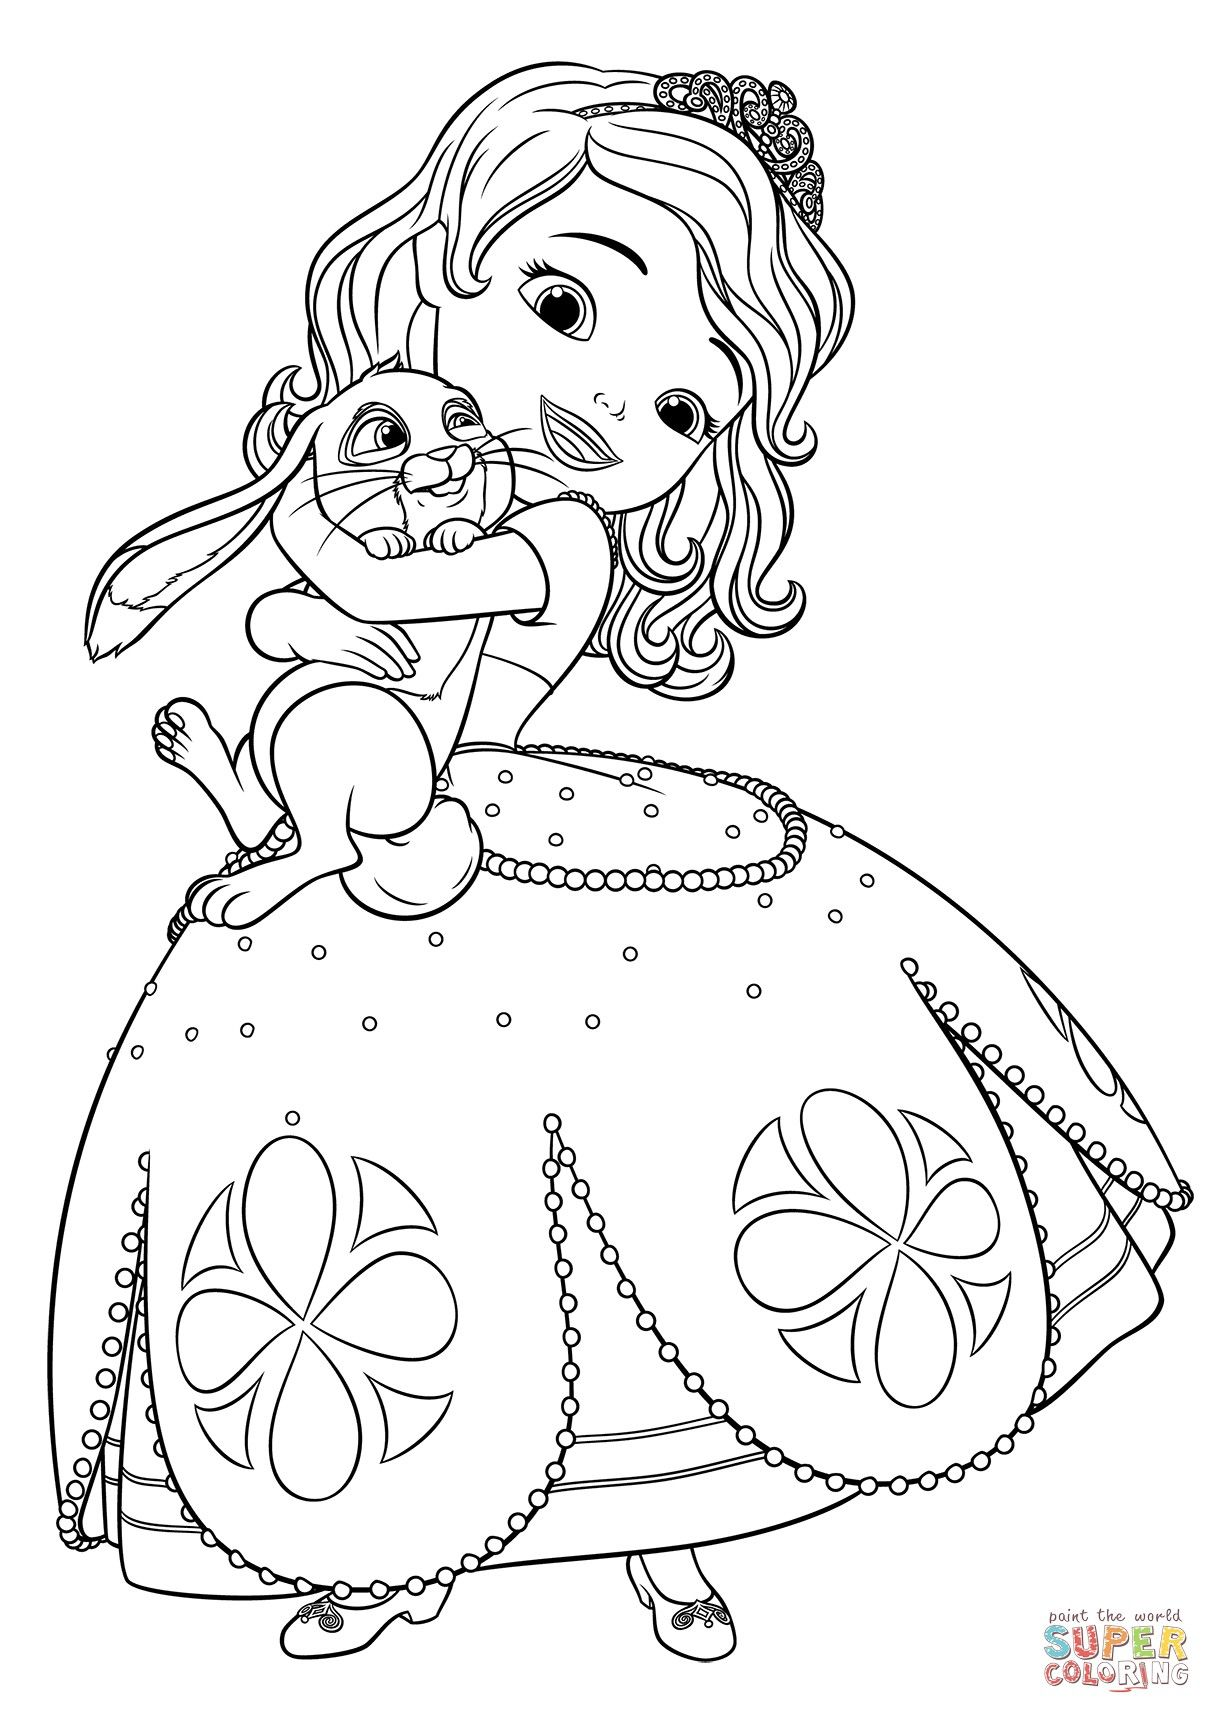 Free Printable Princess Sofia Coloring Pages Through The Thousand Images On Line About Free